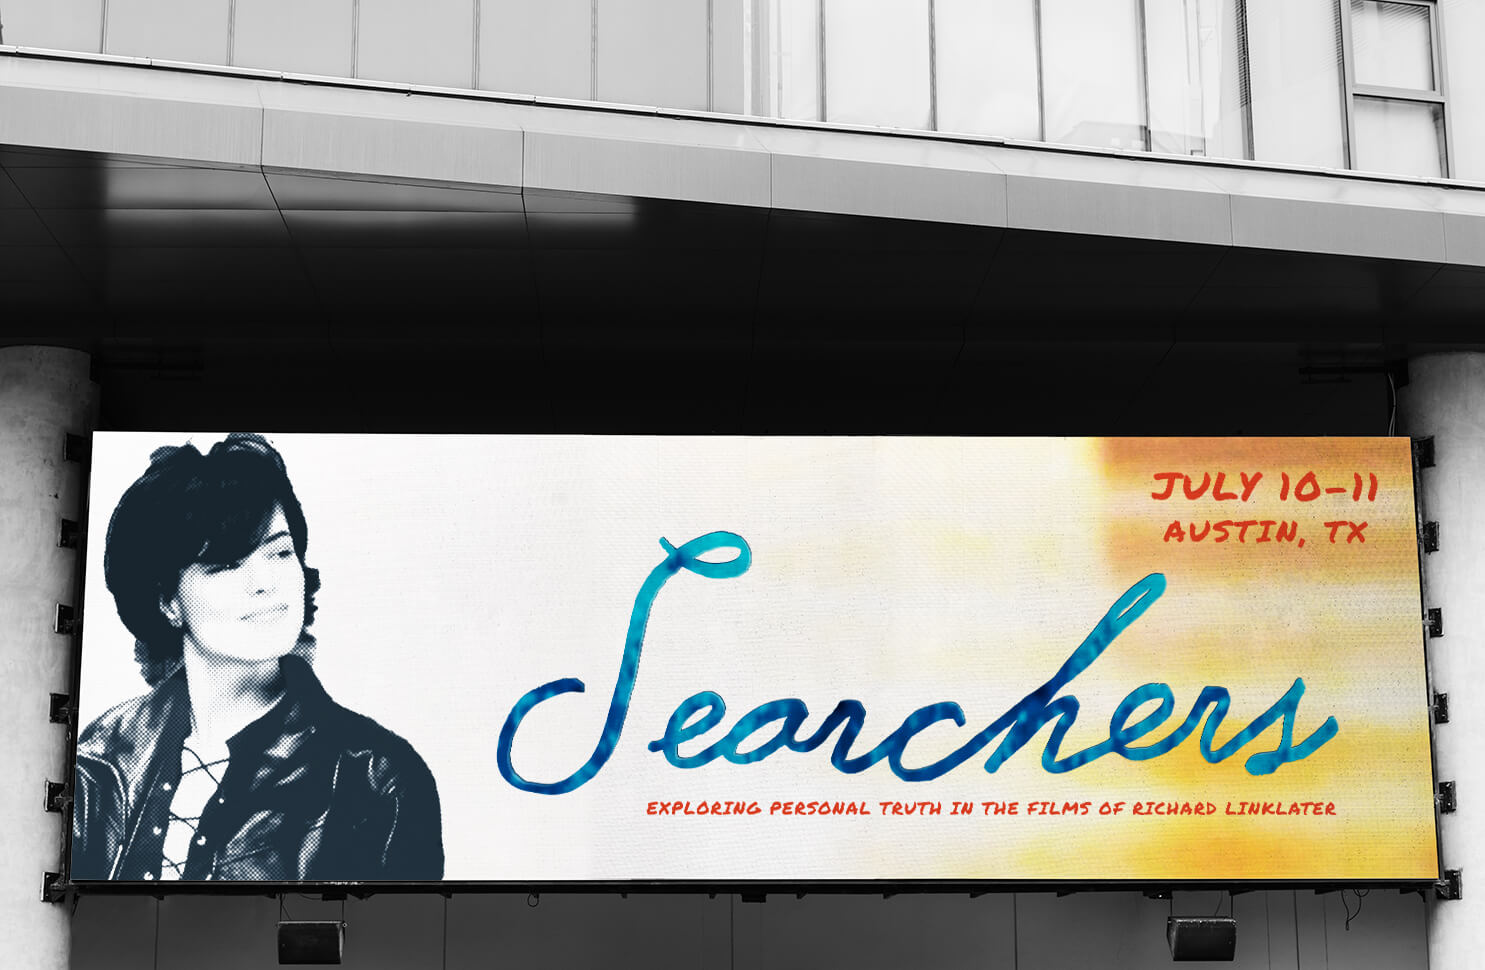 Searchers Billboard